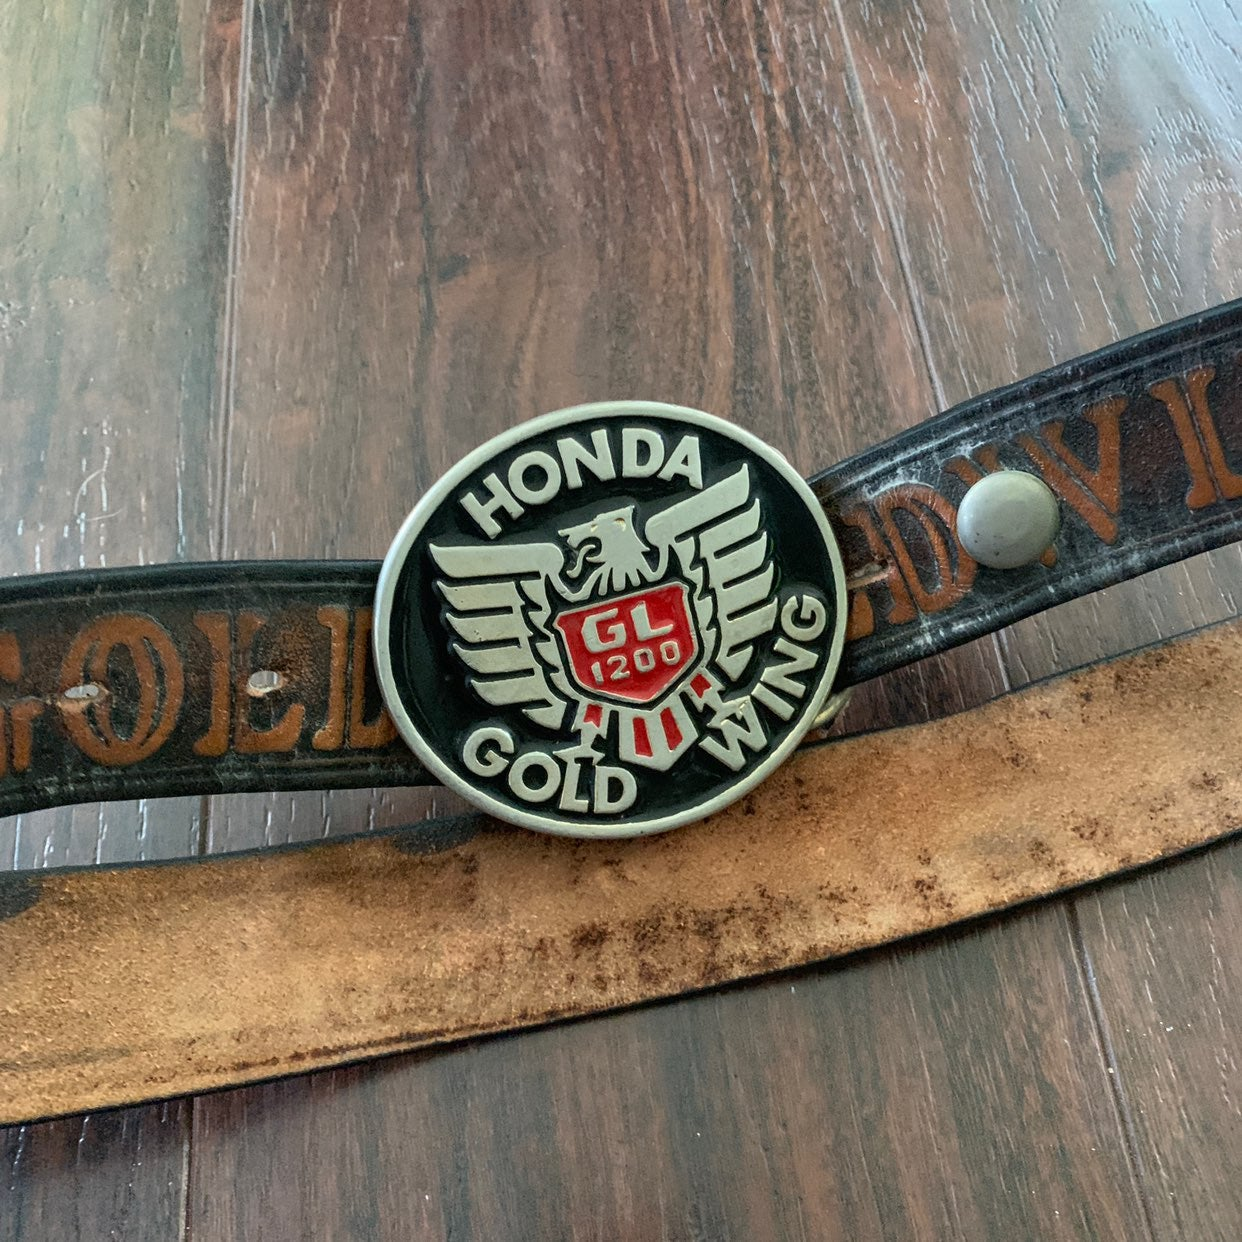 Honda Goldwing Motorcycle Belt/buckle